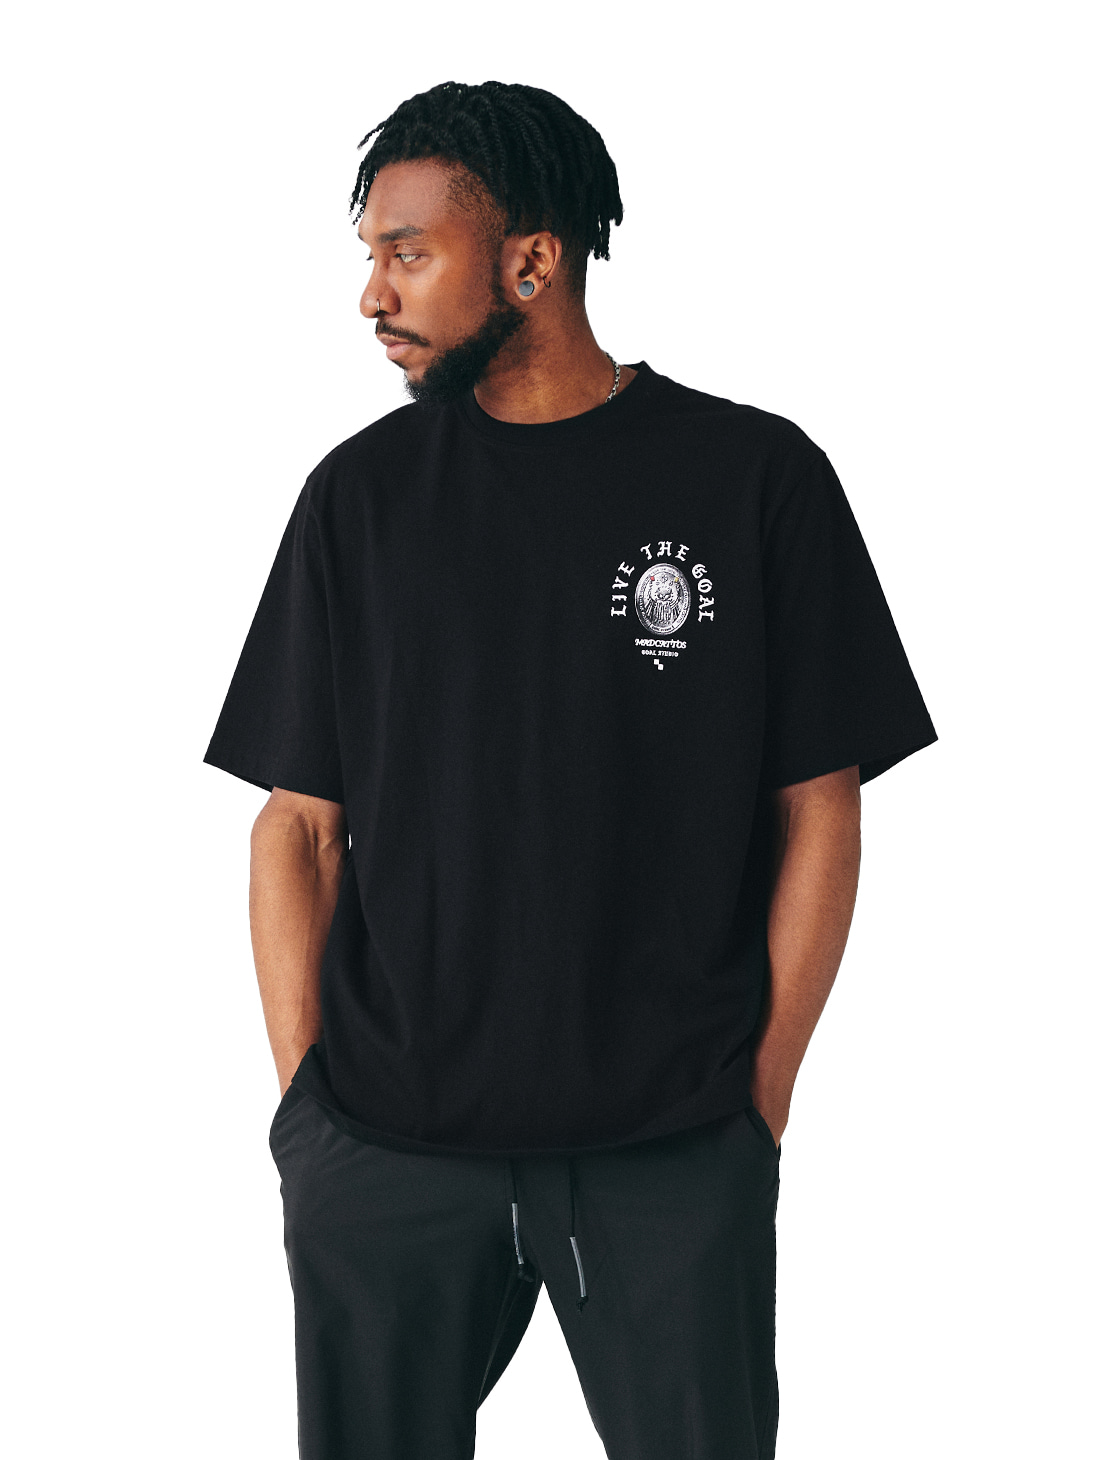 GOALSTUDIO MC COIN GRAPHIC TEE - BLACK